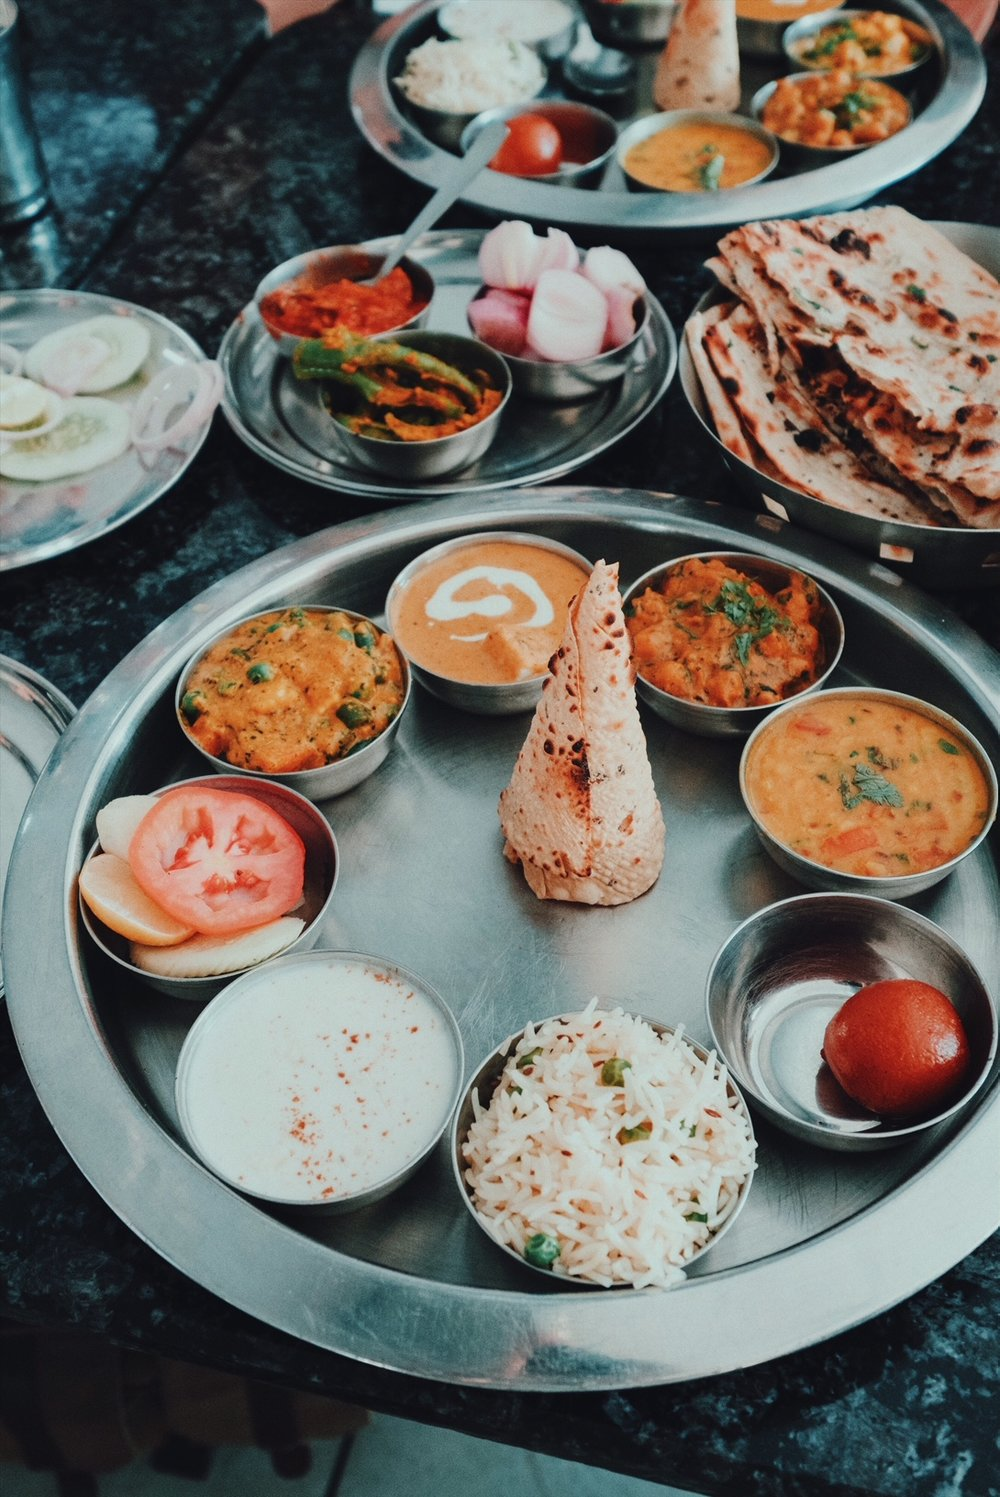 Thalis  are all about a balance of flavours that satisfy the palate while giving the body complete nutrition.